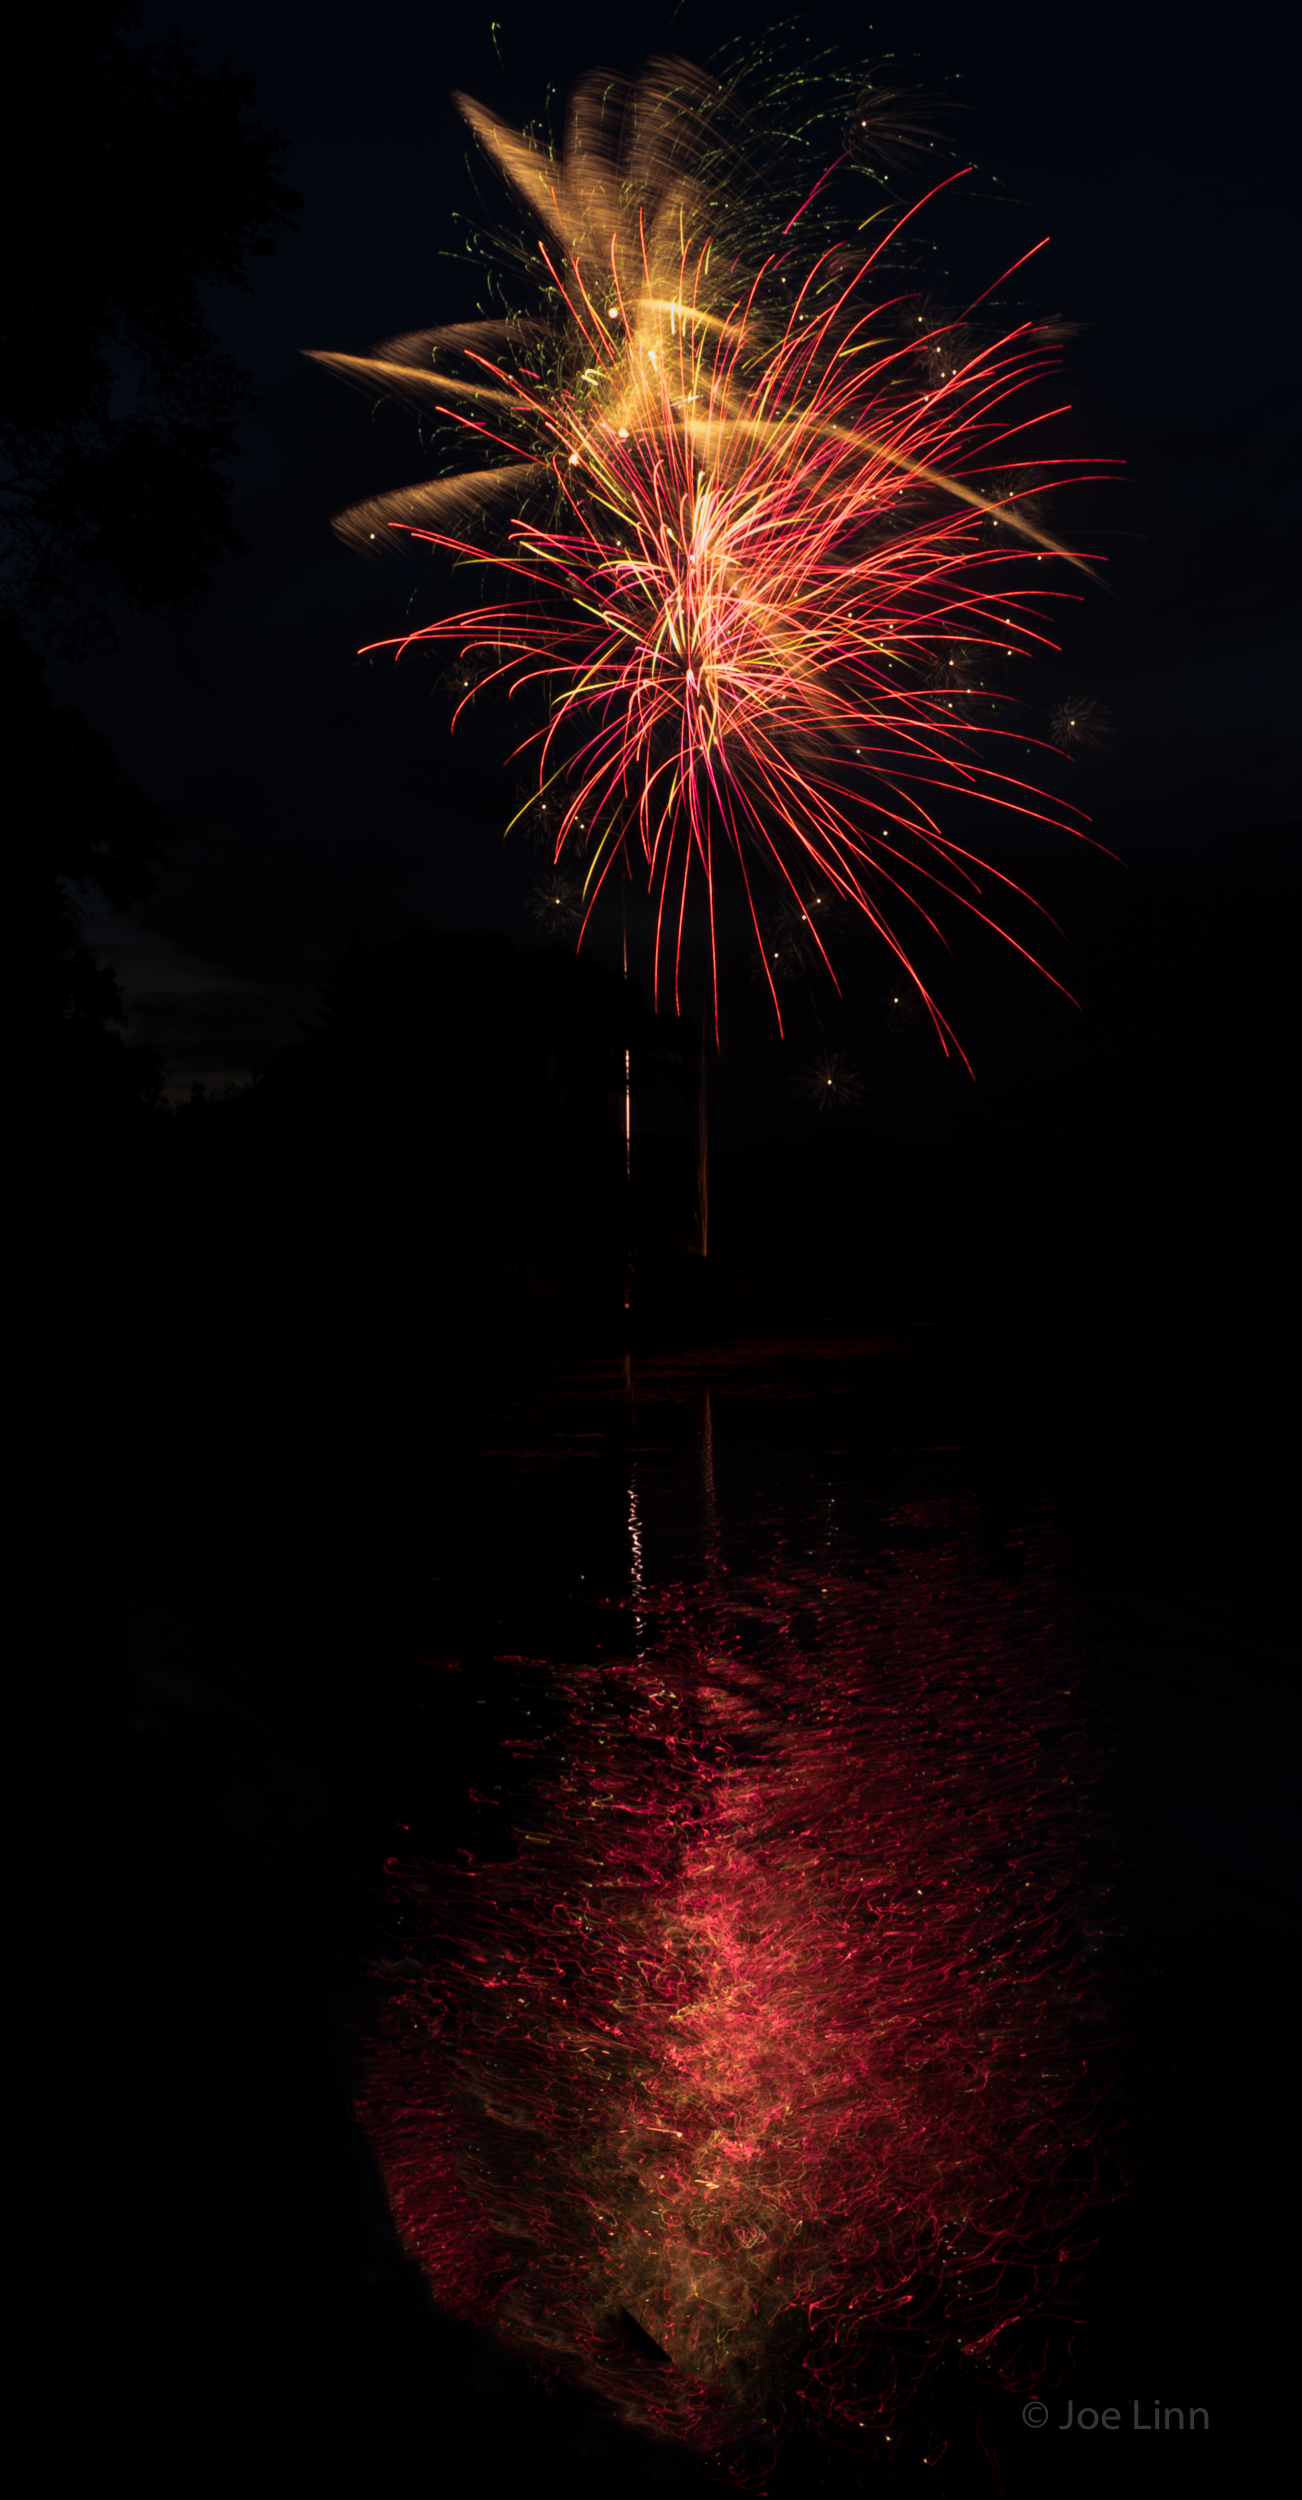 Fireworks reflections 5